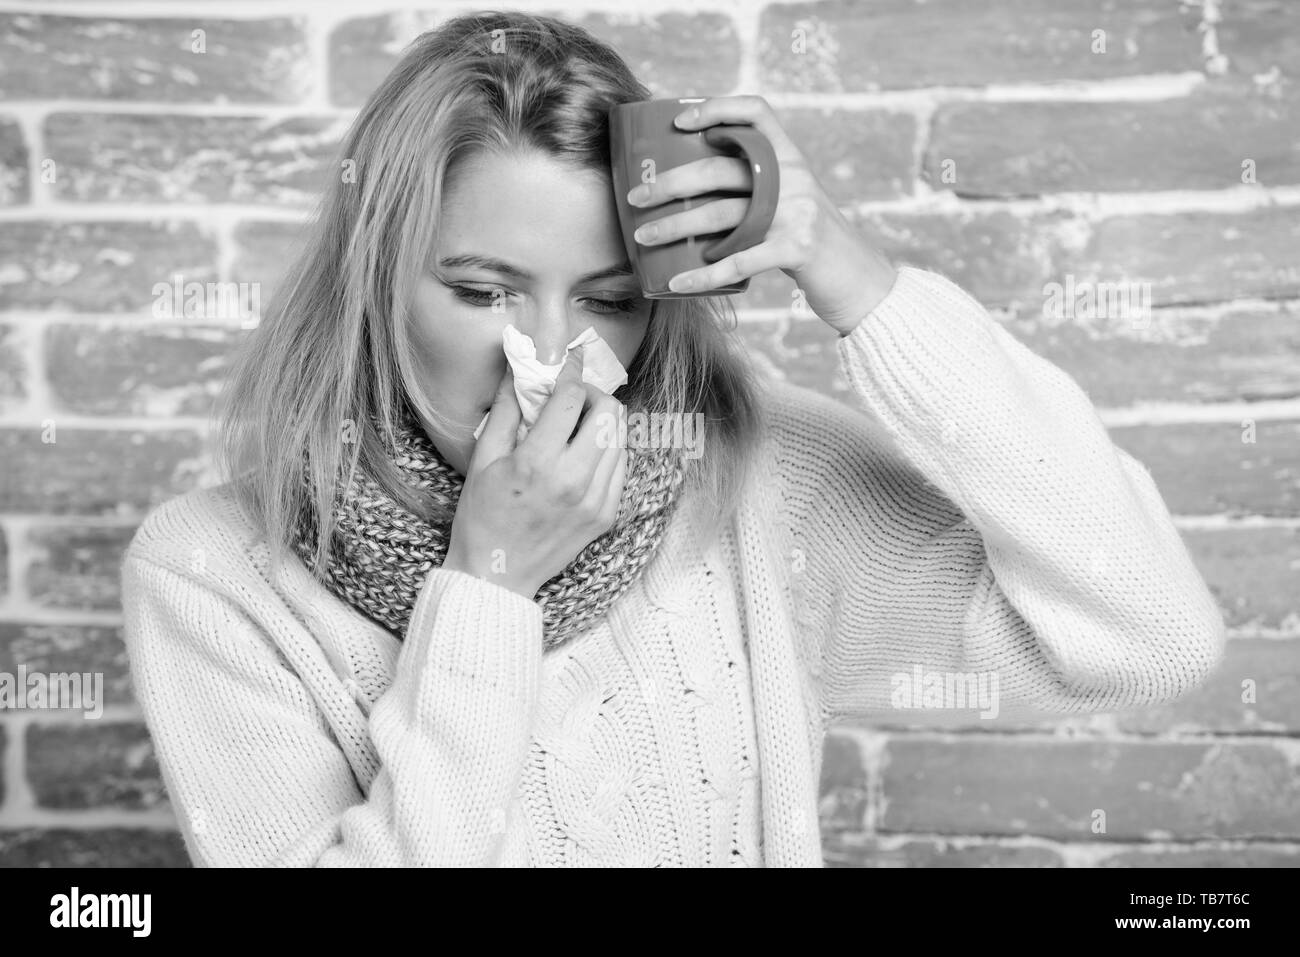 Runny nose symptom of cold  Tips how get rid of cold